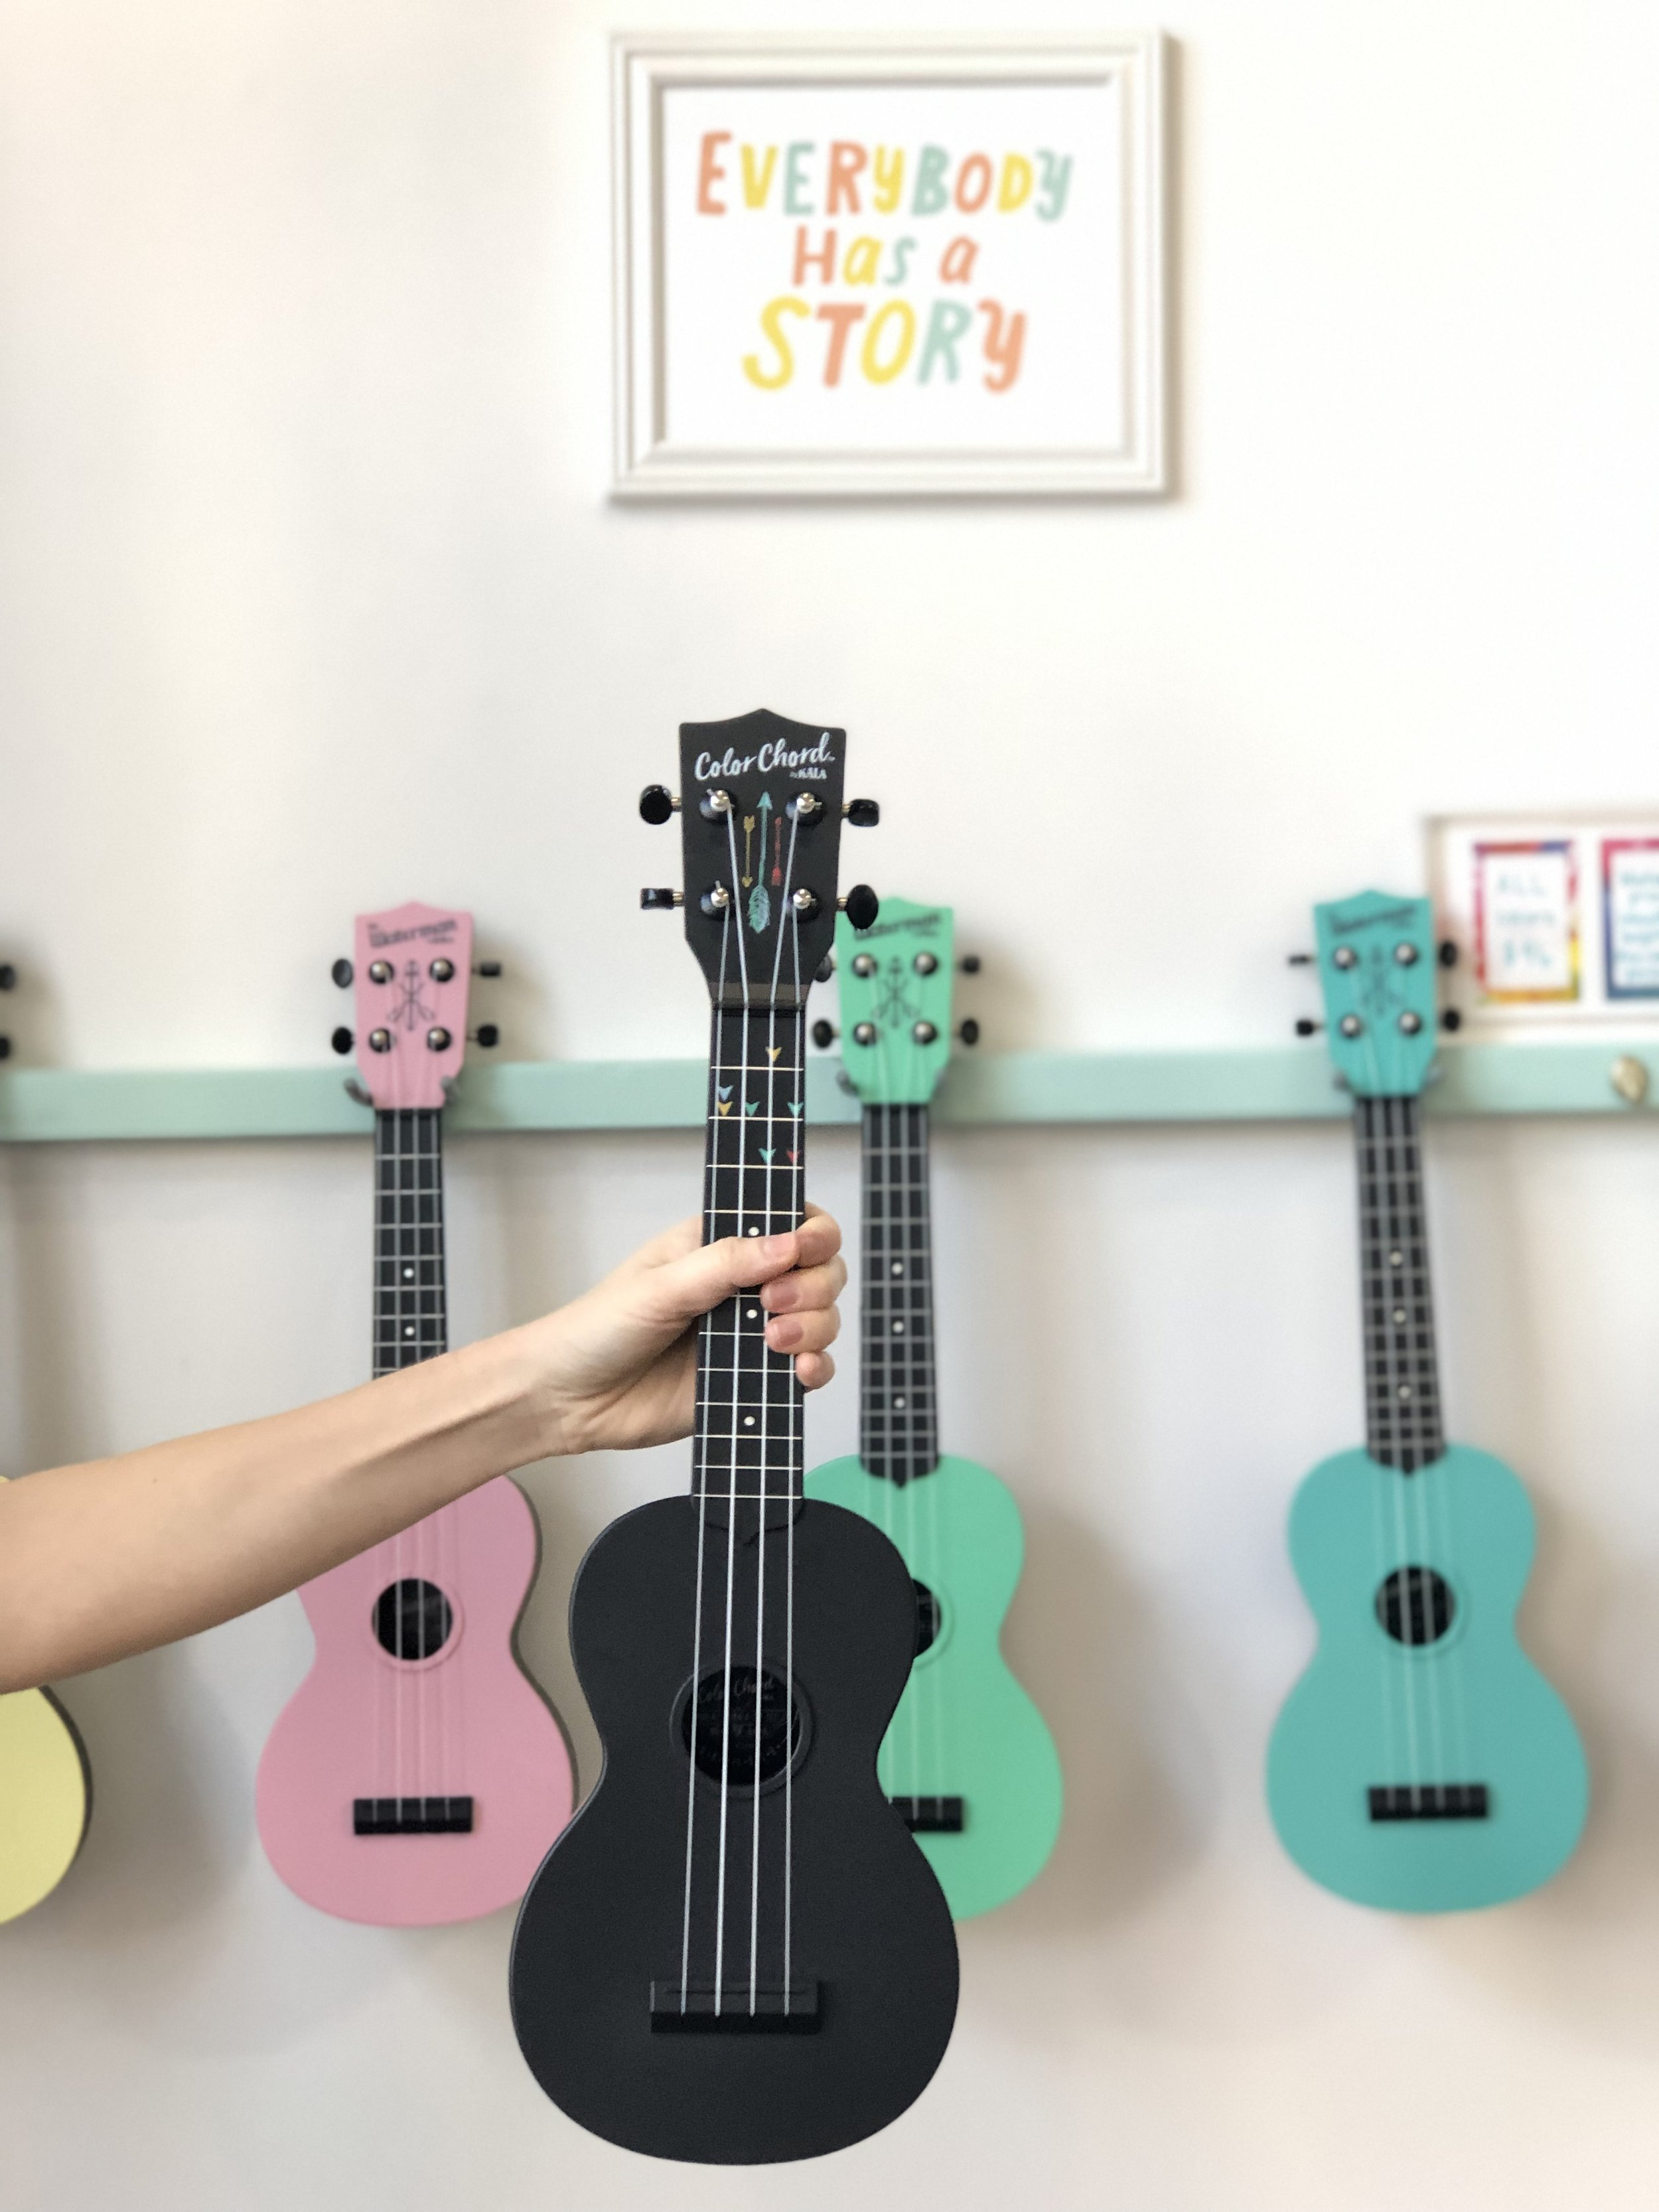 The colorful Waterman ukuleles behind the Color Chord are the same instrument but without the coding system. Life hack: you can use sticky dots from an office supply store to create the color system.